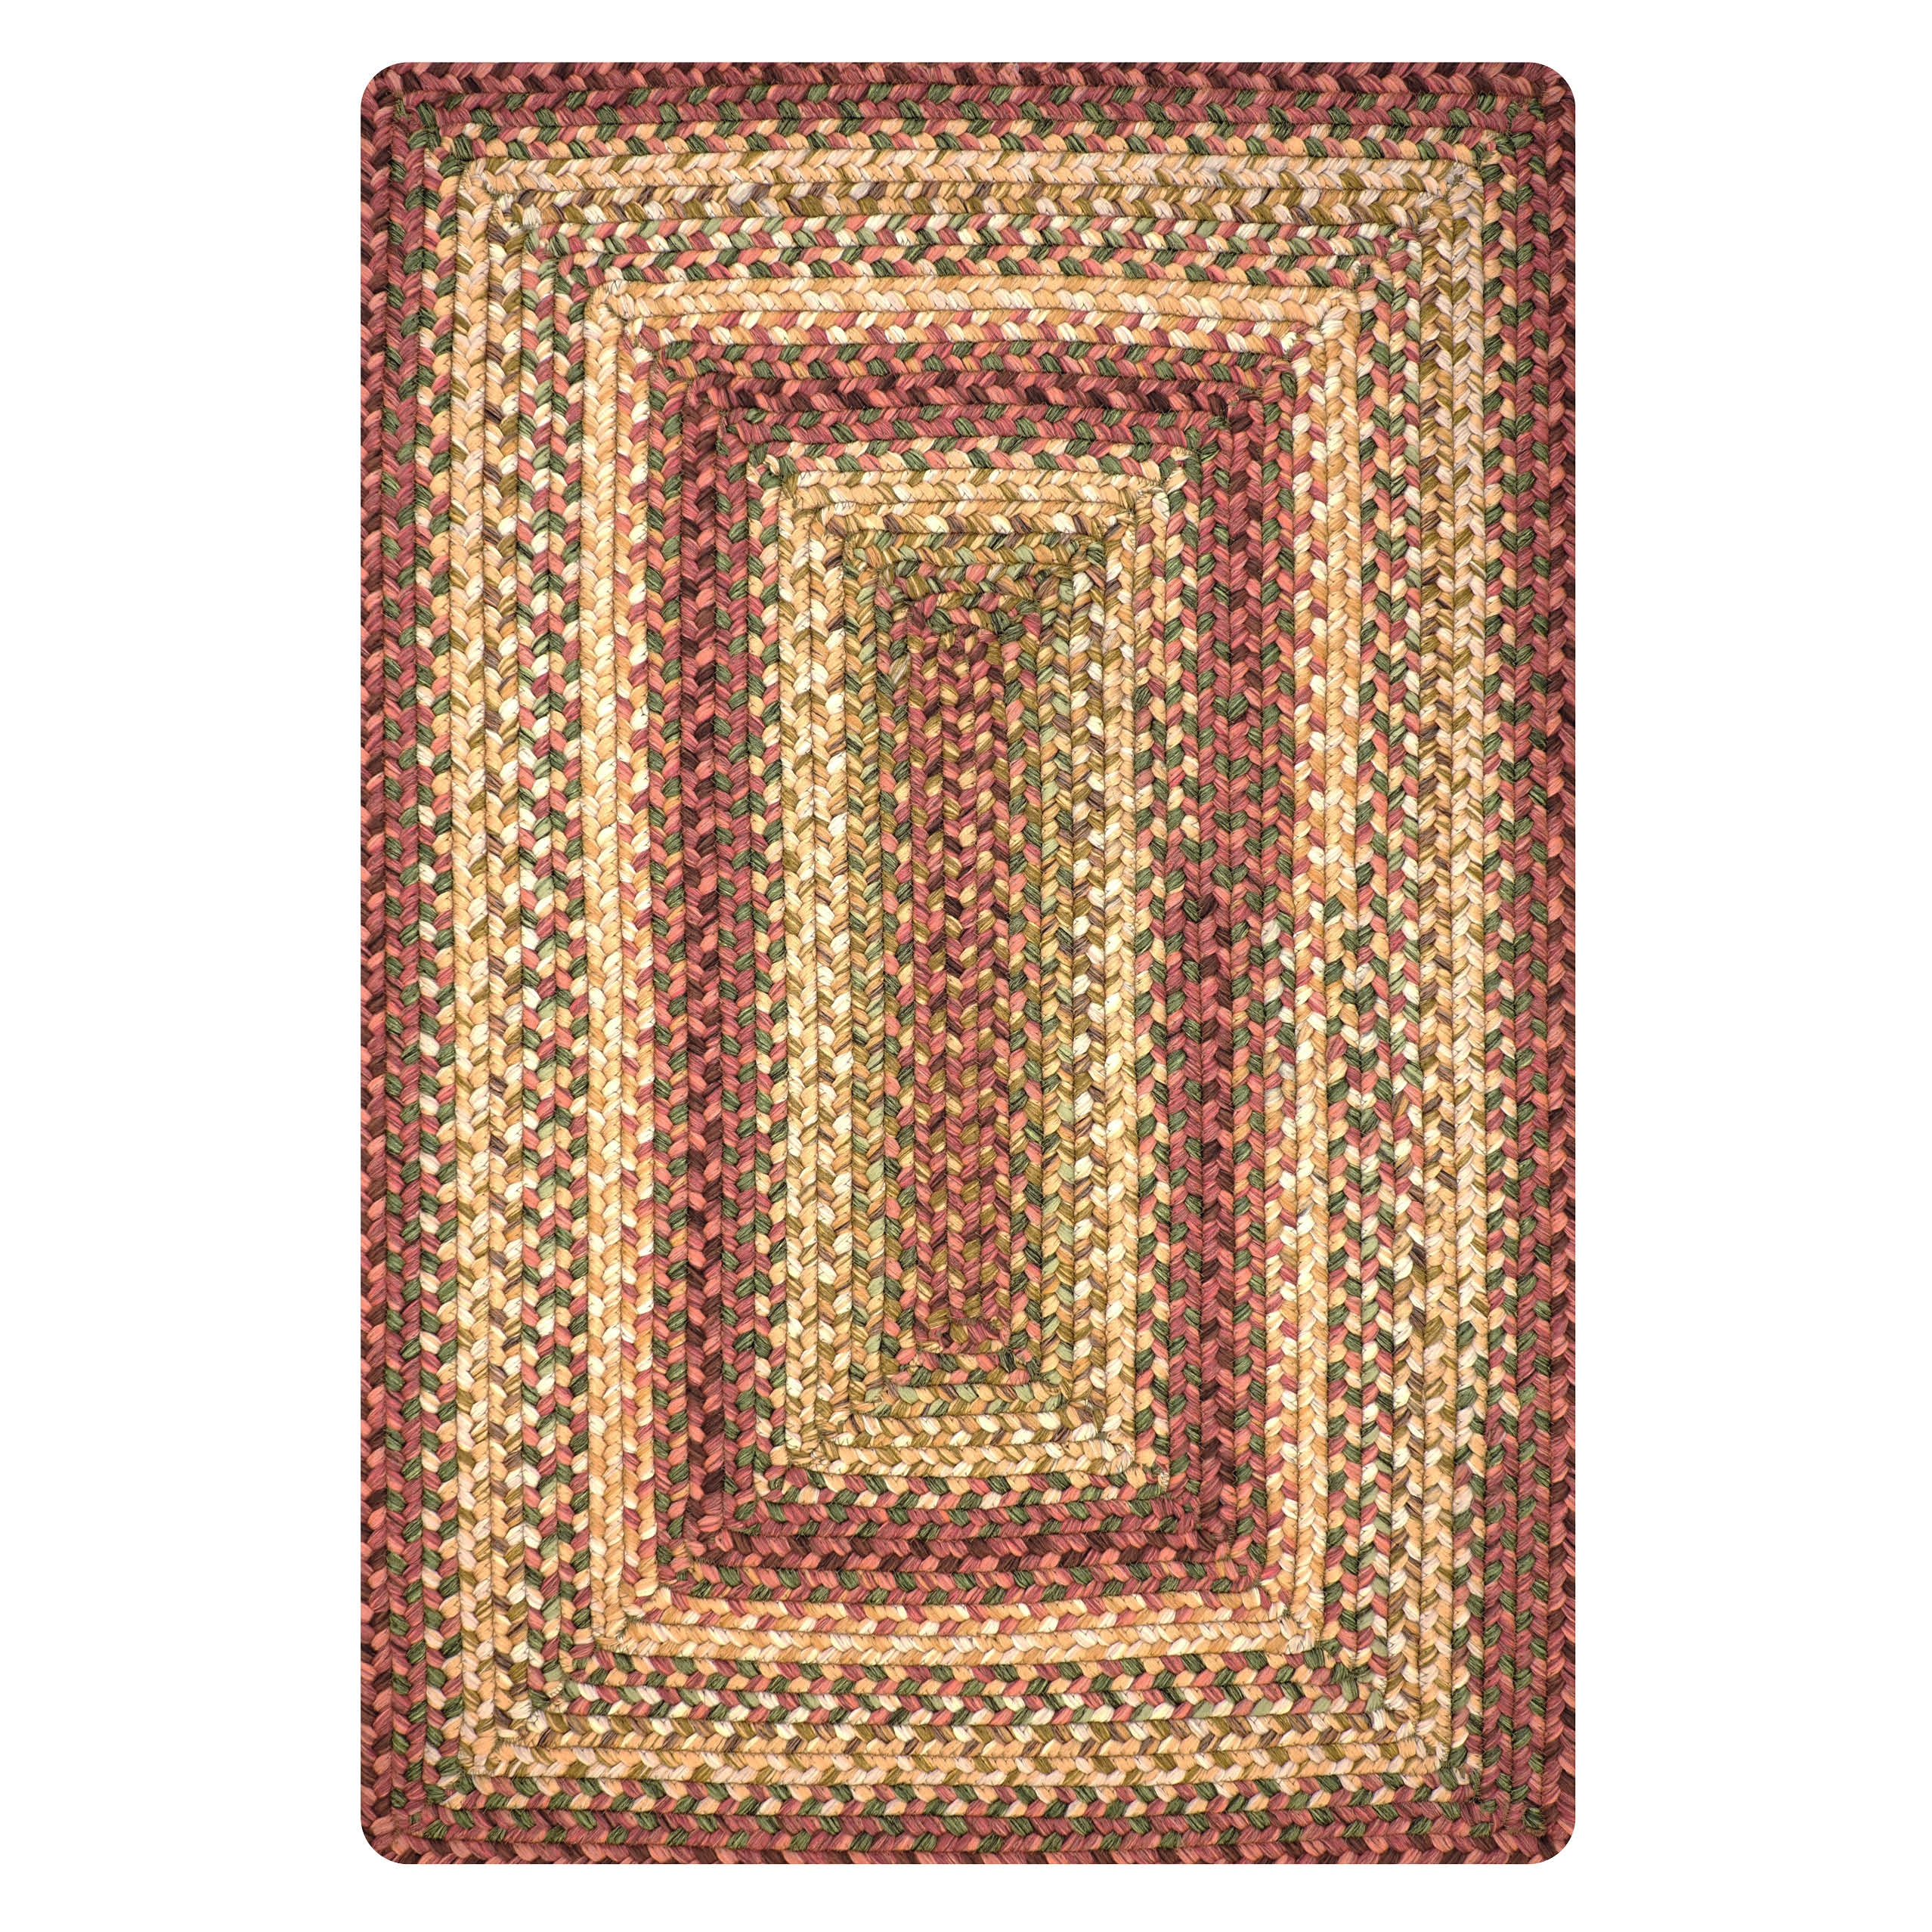 Barcelona Gold - Burgundy Ultra Durable Braided Rectangular Rugs